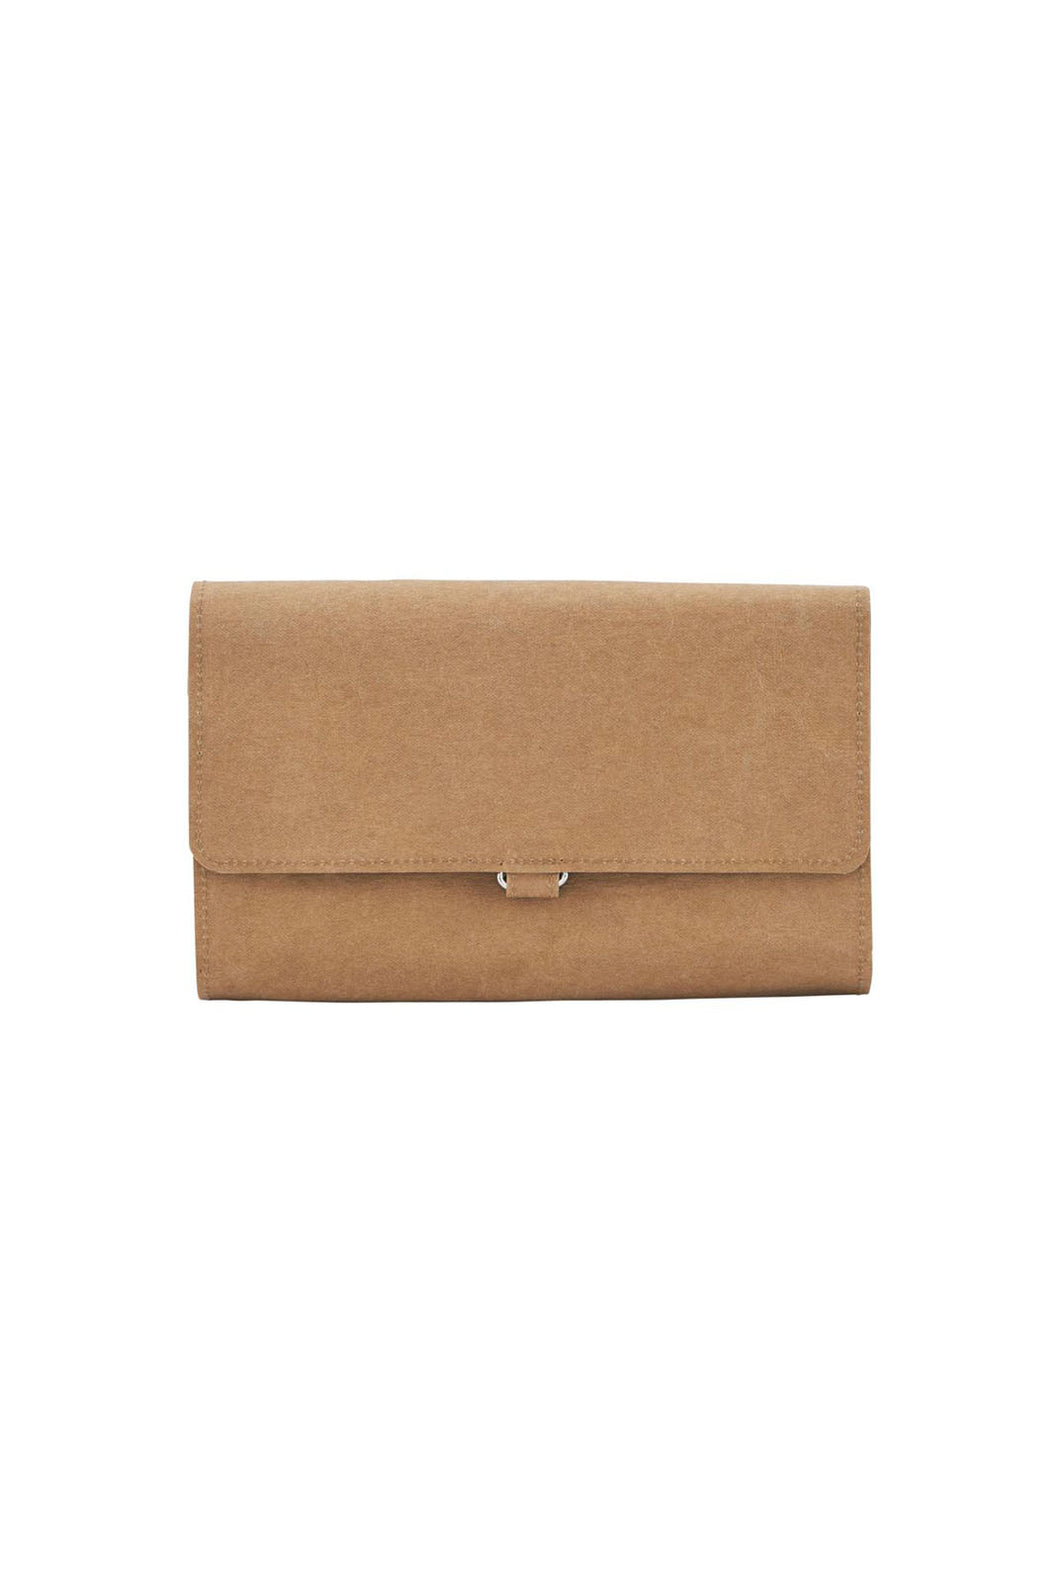 House Doctor - Nomadic Folding Toilet Bag - Light brown